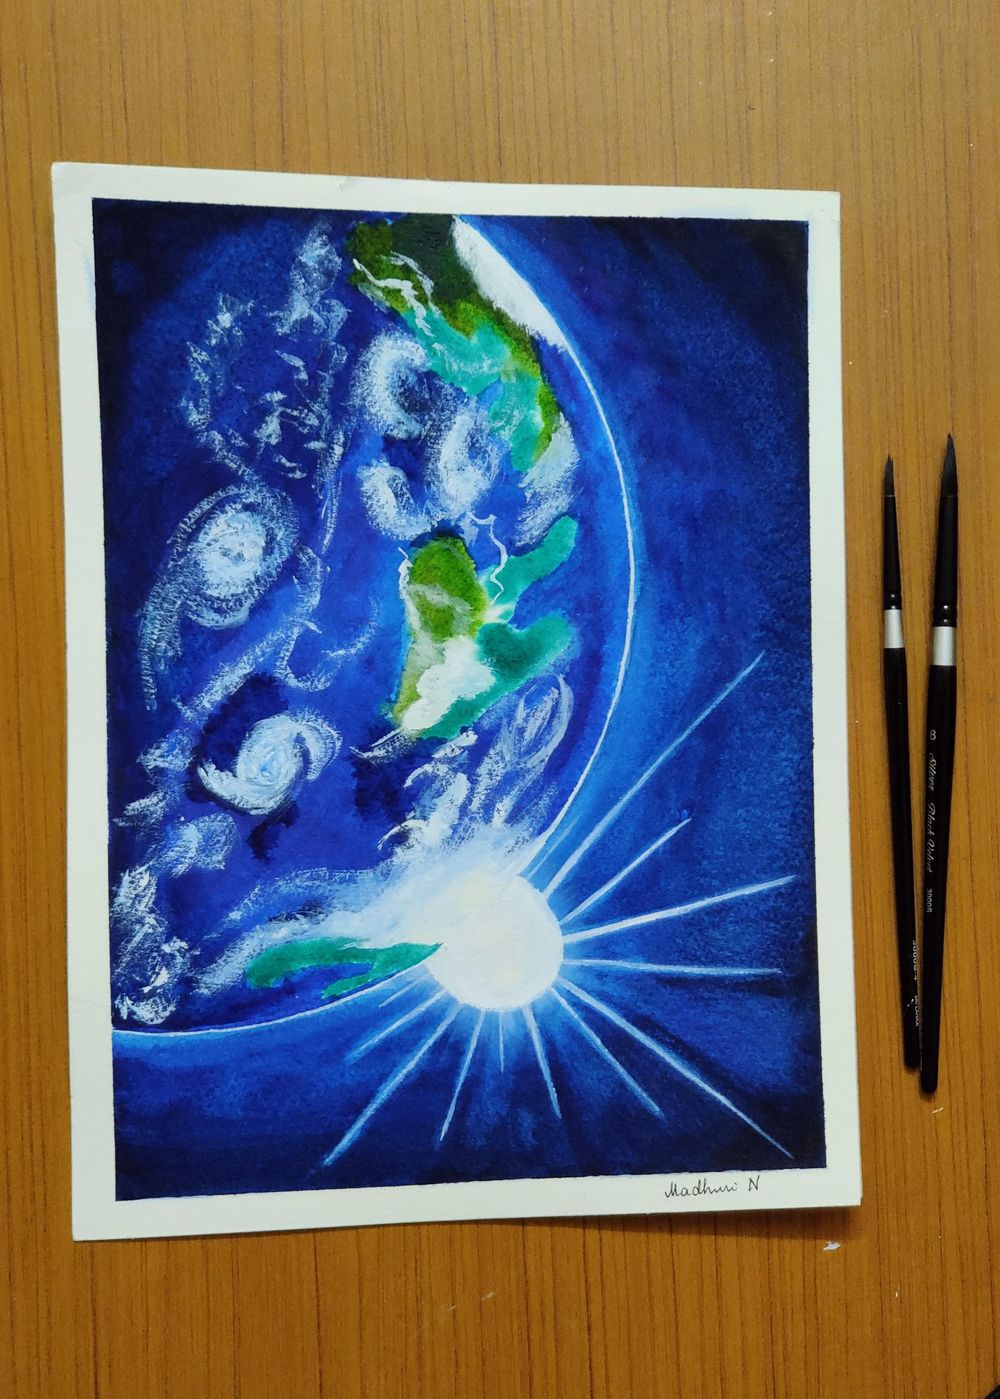 Galaxy paintings - image 1 - student project